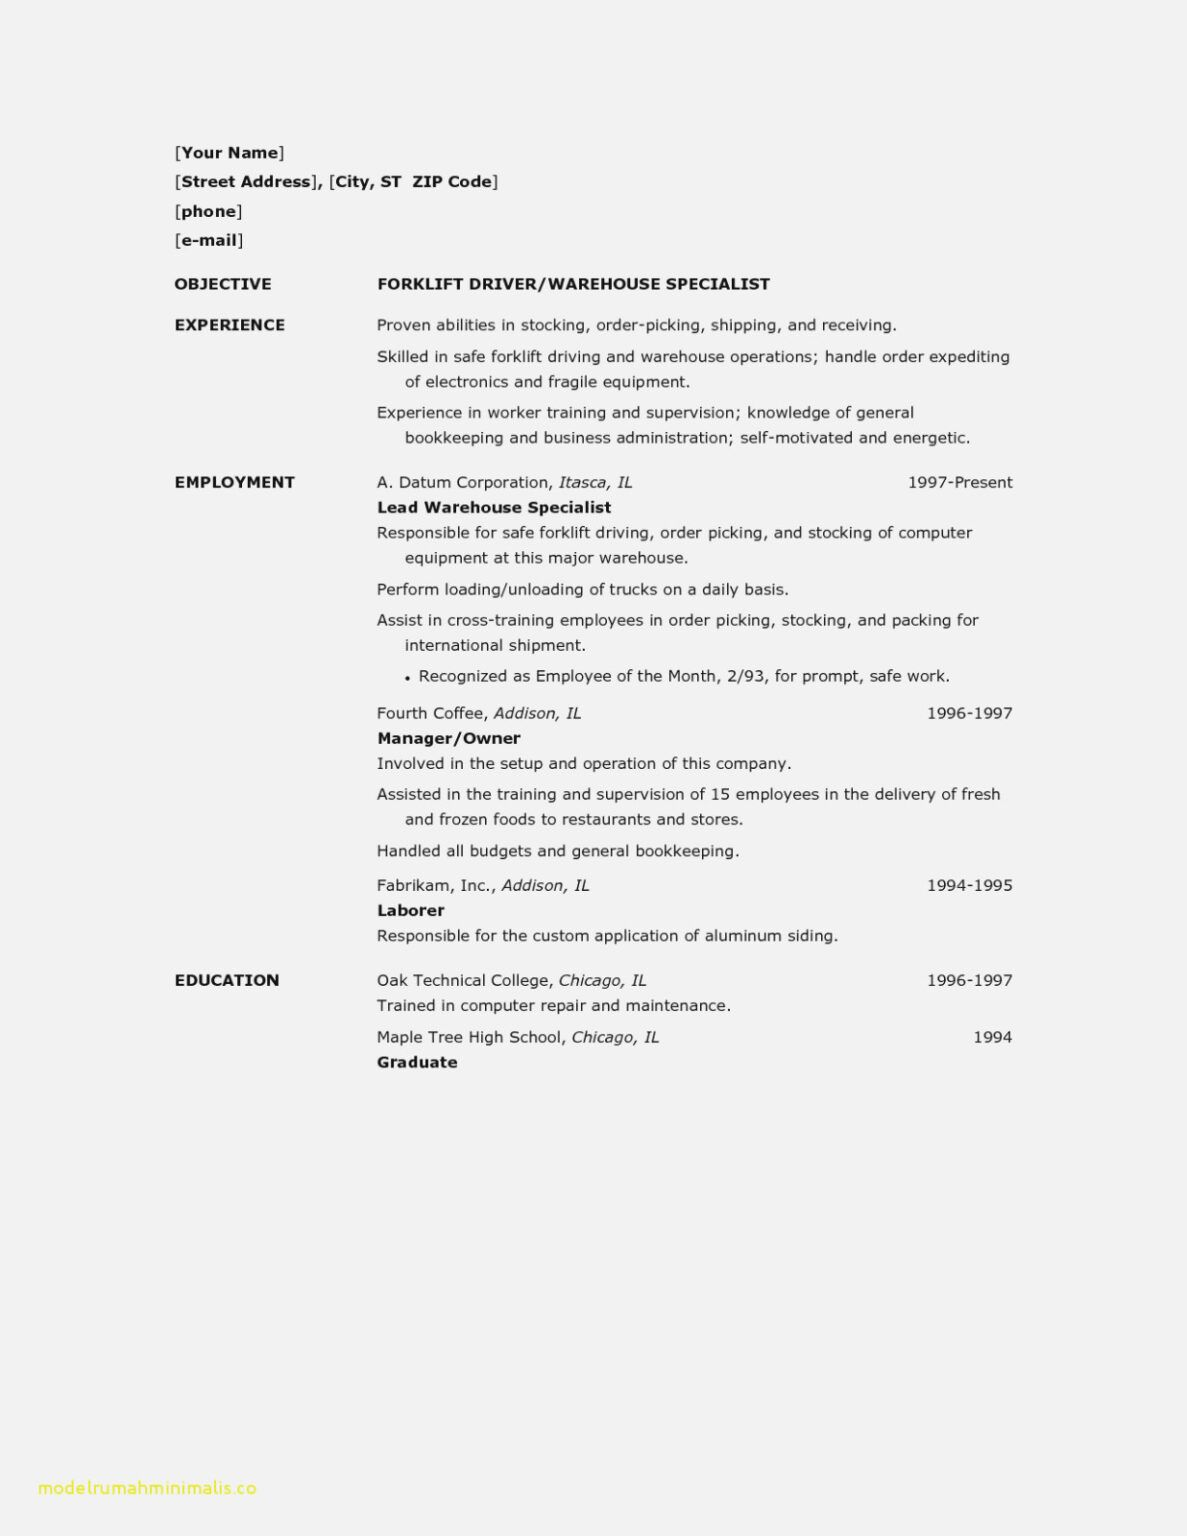 12 Forklift Operator Resume Samples Radaircars within